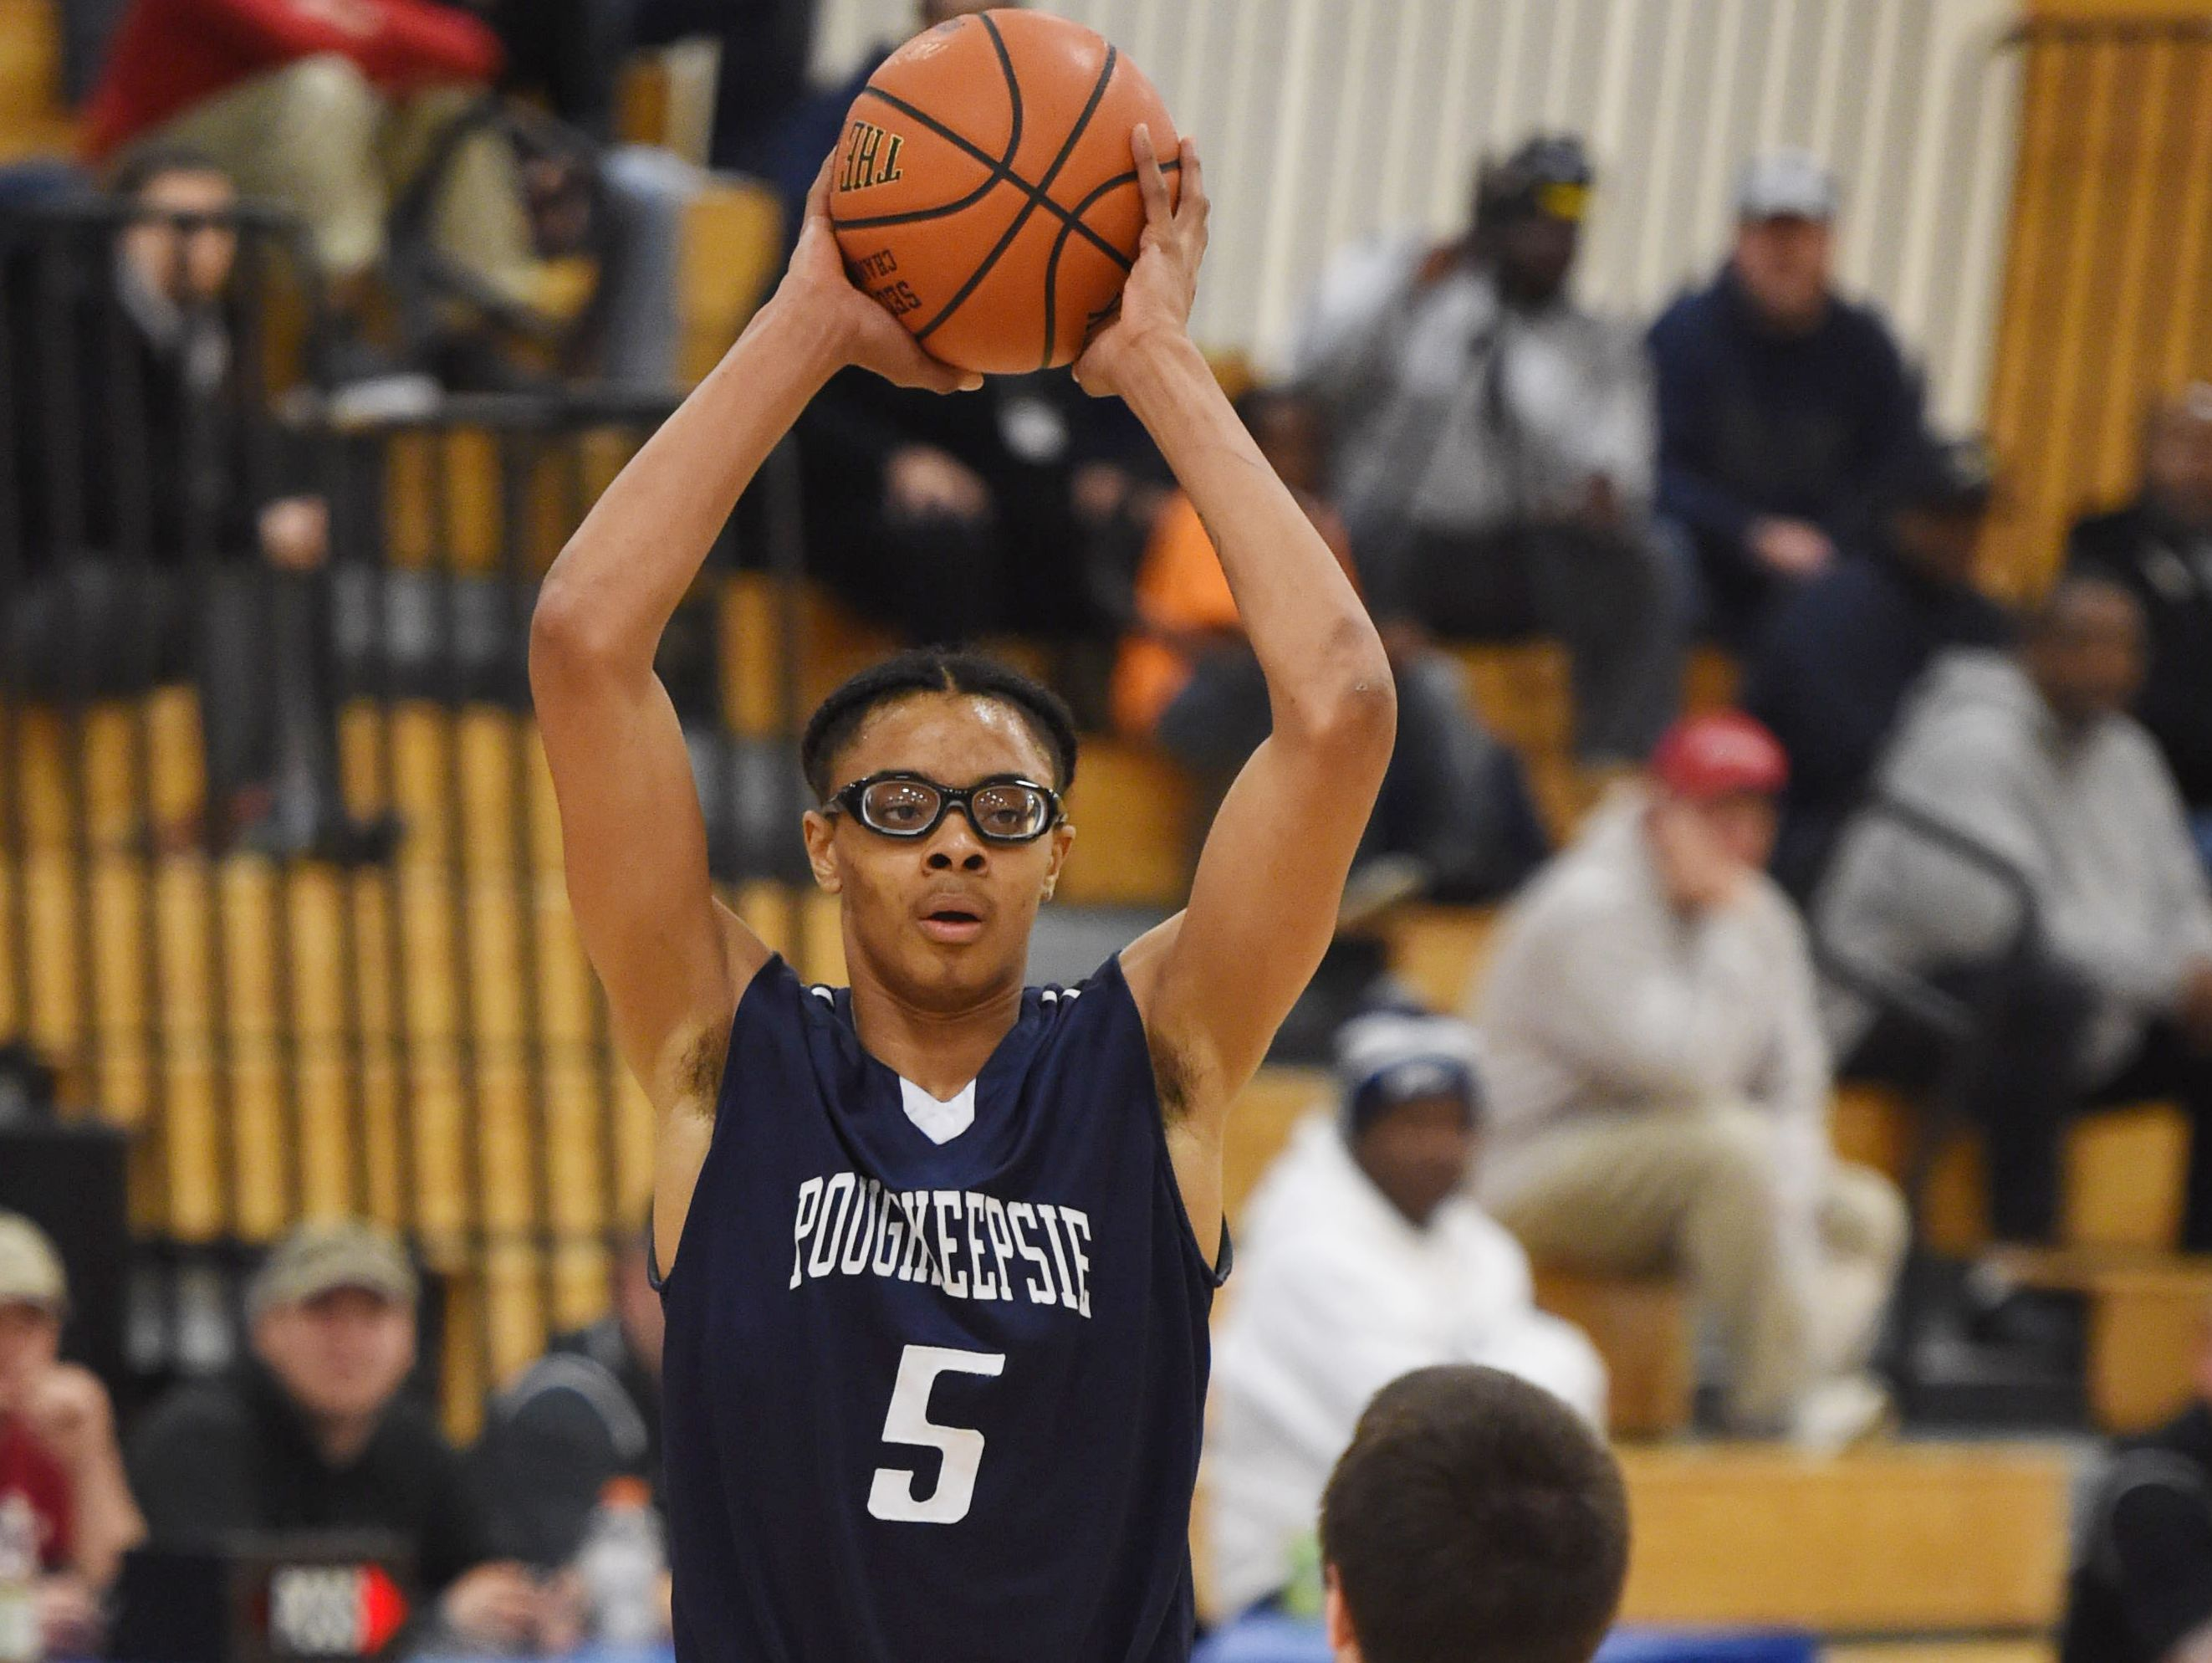 Poughkeepsie High School's Caval Haylett looks for a teammate to pass the ball to during a game versus Red Hook on Feb. 17, 2016.